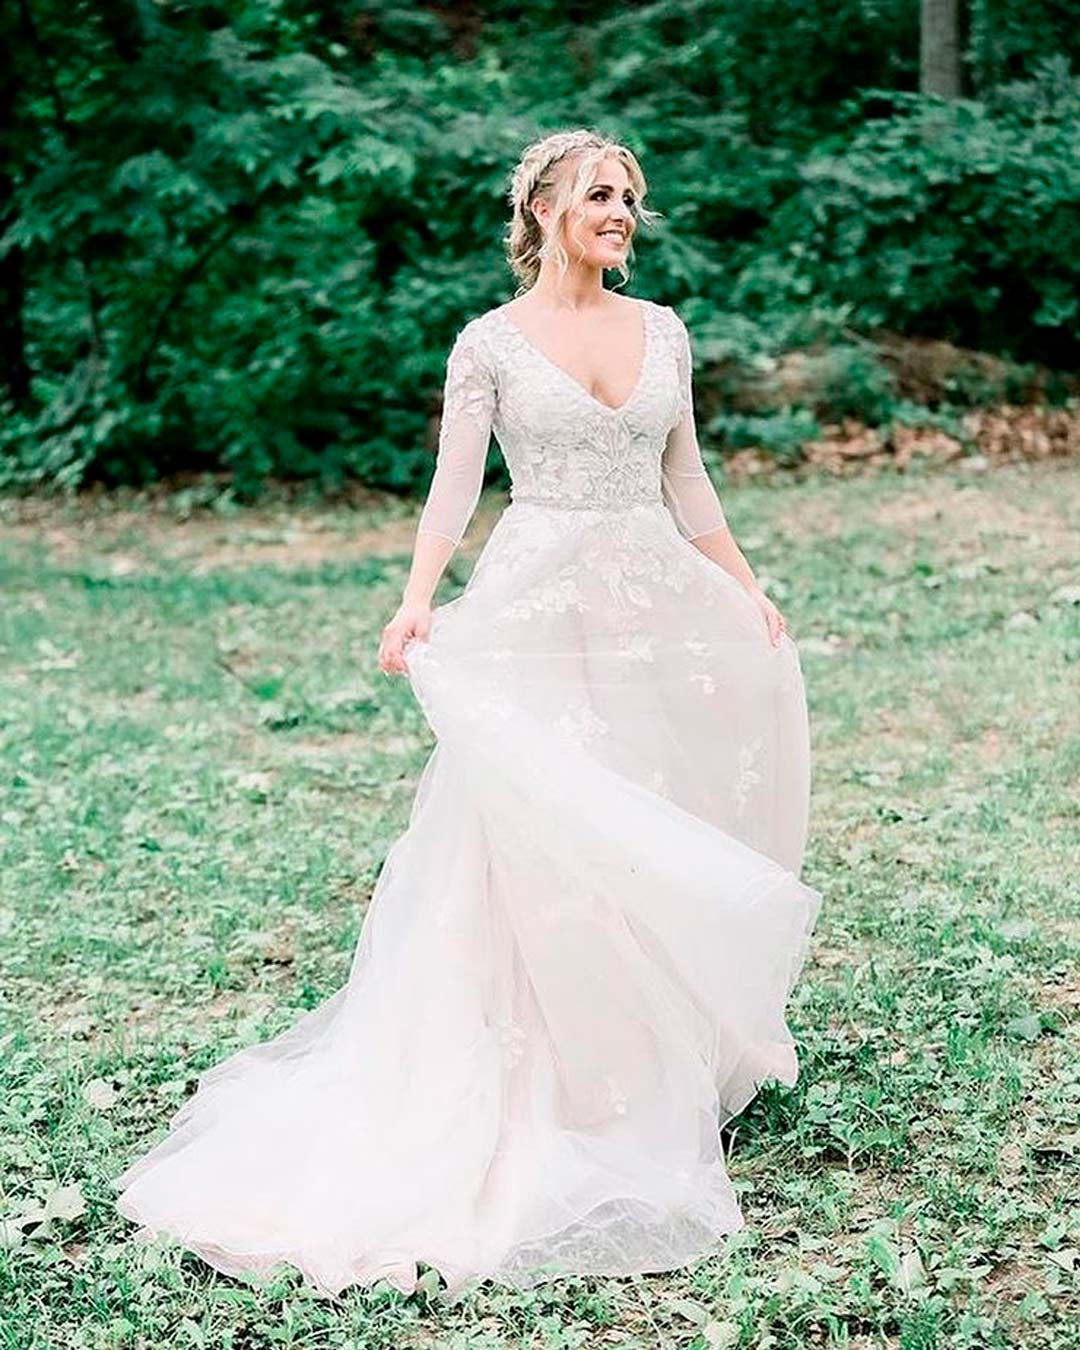 rustic-wedding ideas bride dress